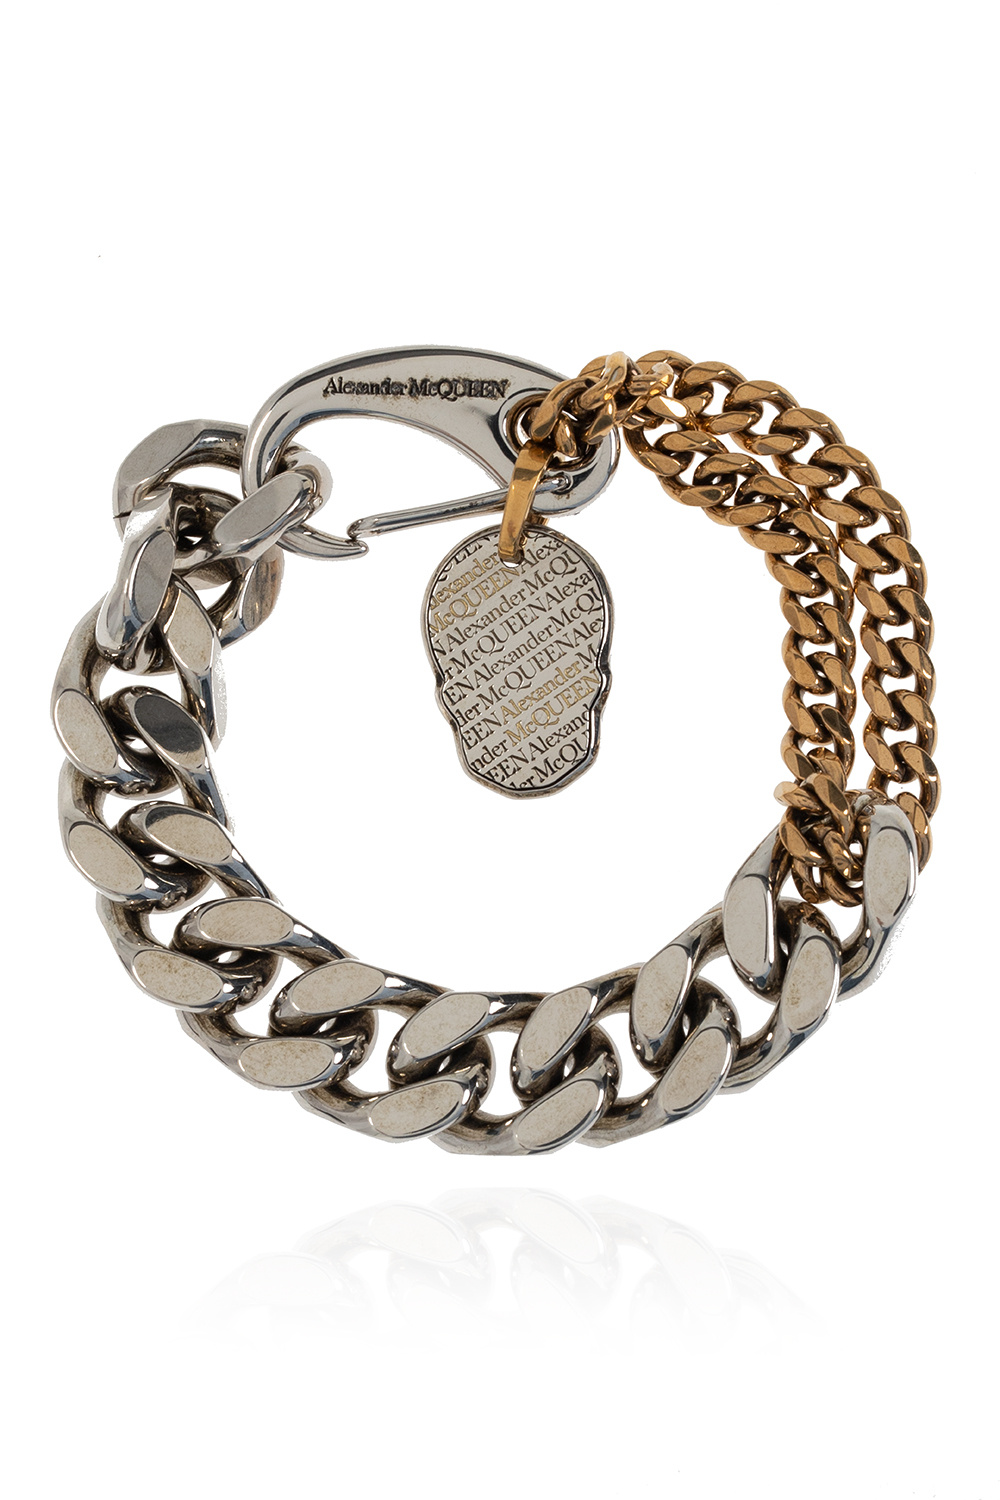 Alexander McQueen Chain necklace with lobster clasp